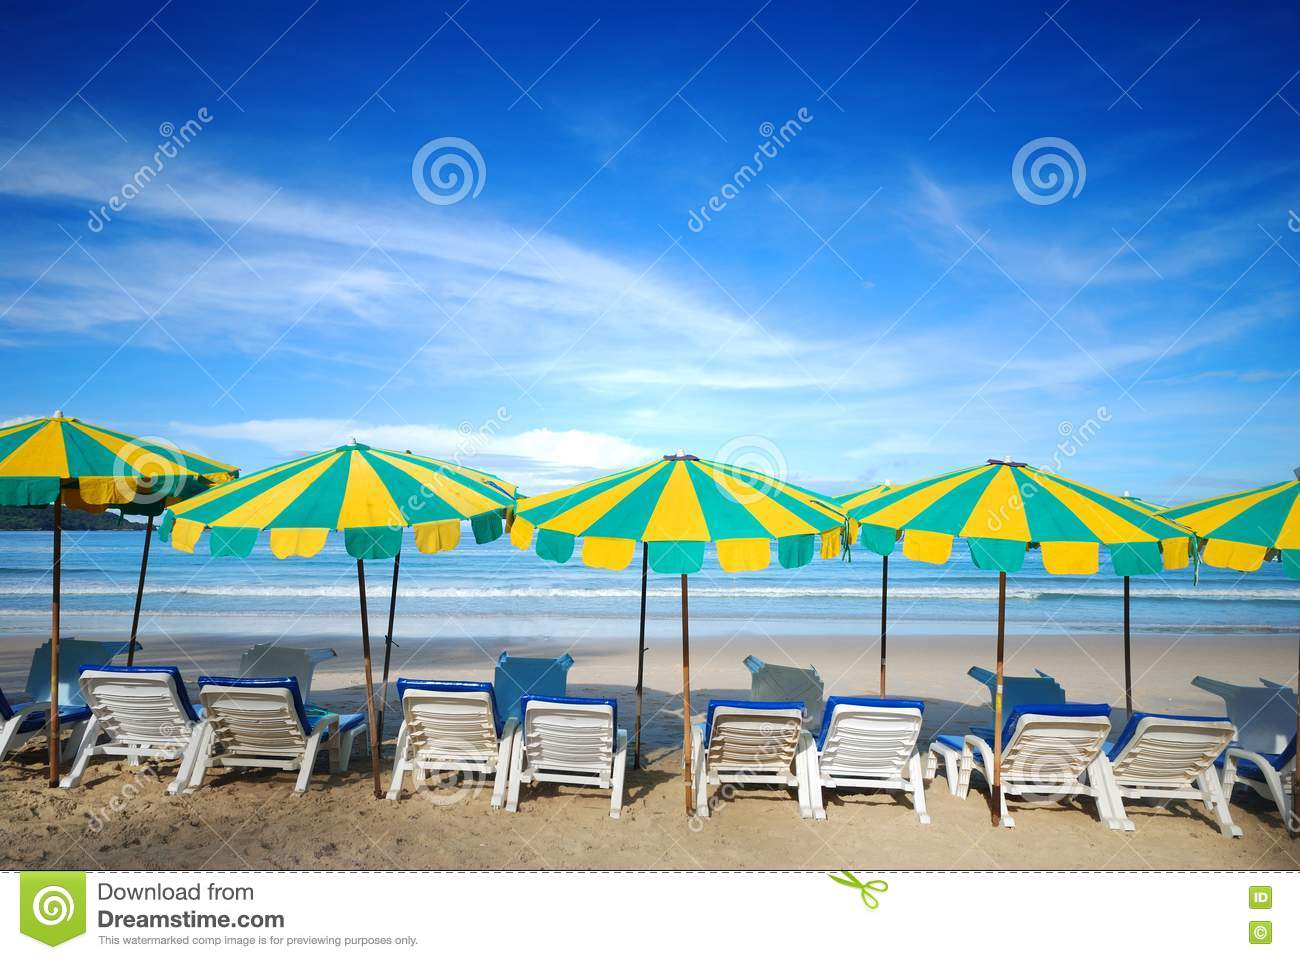 Beach Furniture Royalty Free Stock Images - Image: 25165579